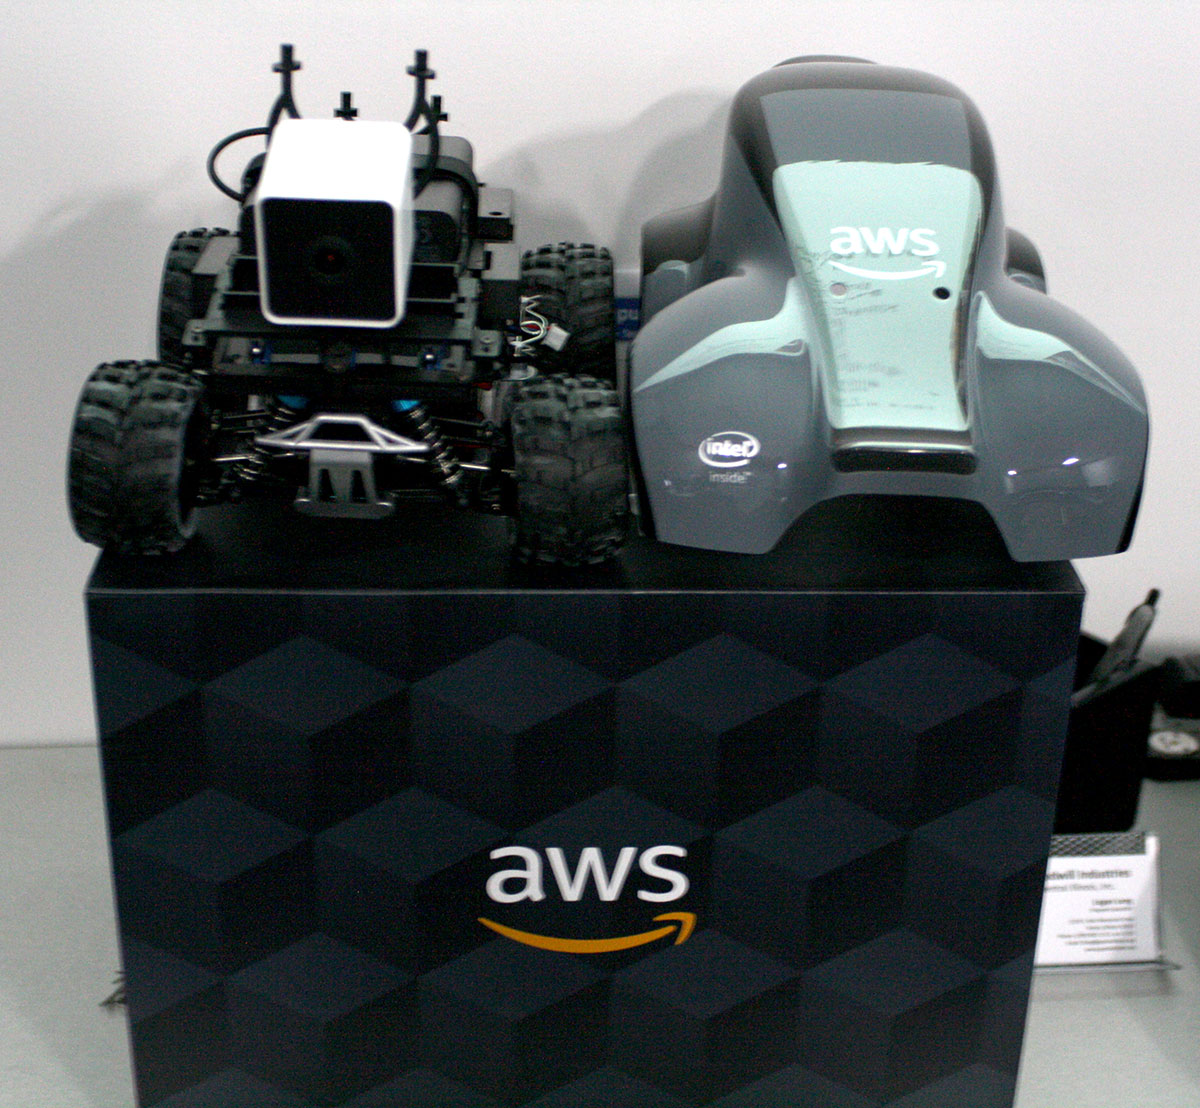 STEM Academy Students to Use AI to Program Self-Driving Cars